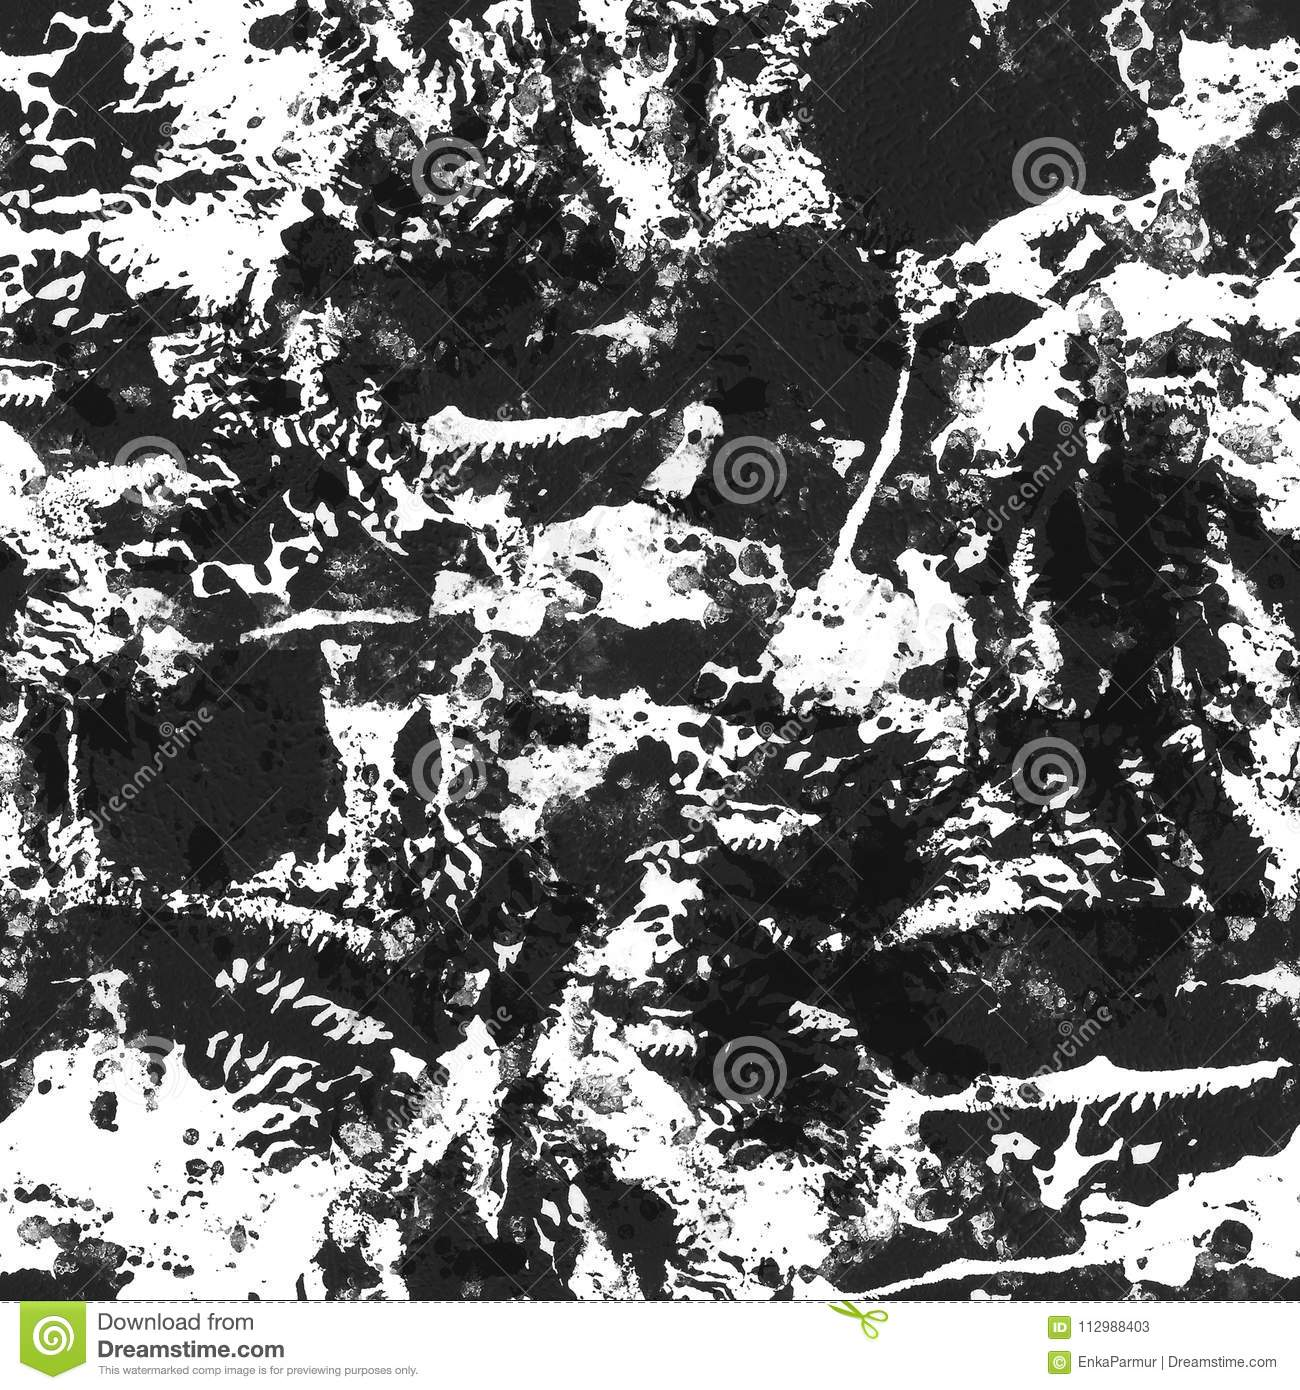 Designed grunge texture, made with acrylic paints. Black and white seamless pattern. Shabby stained aged surface.